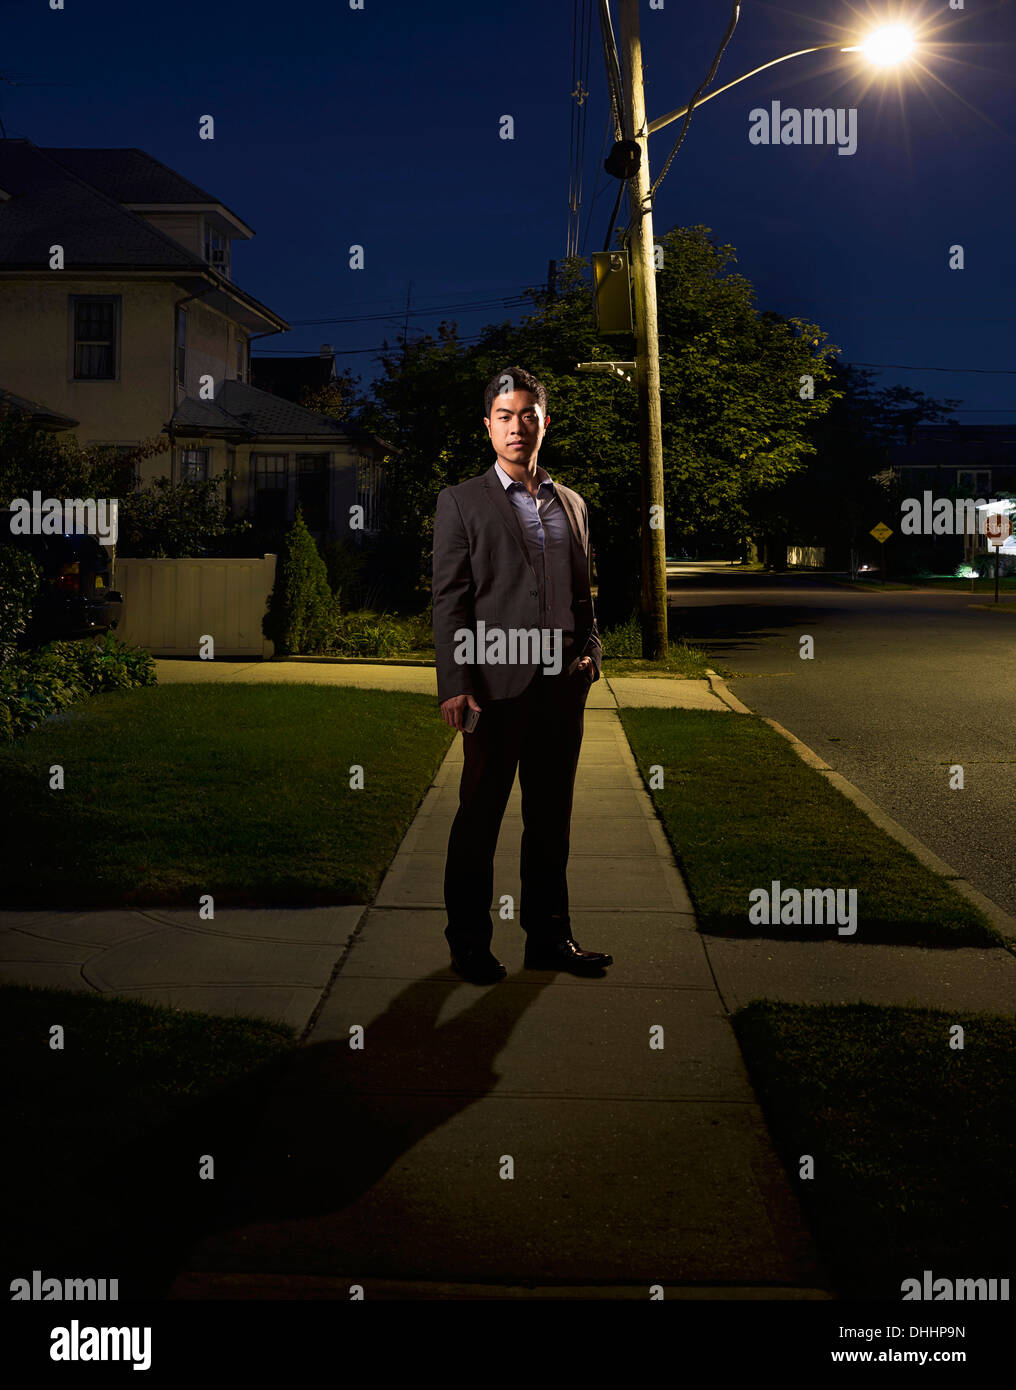 Portrait of business man coming home late at night - Stock Image